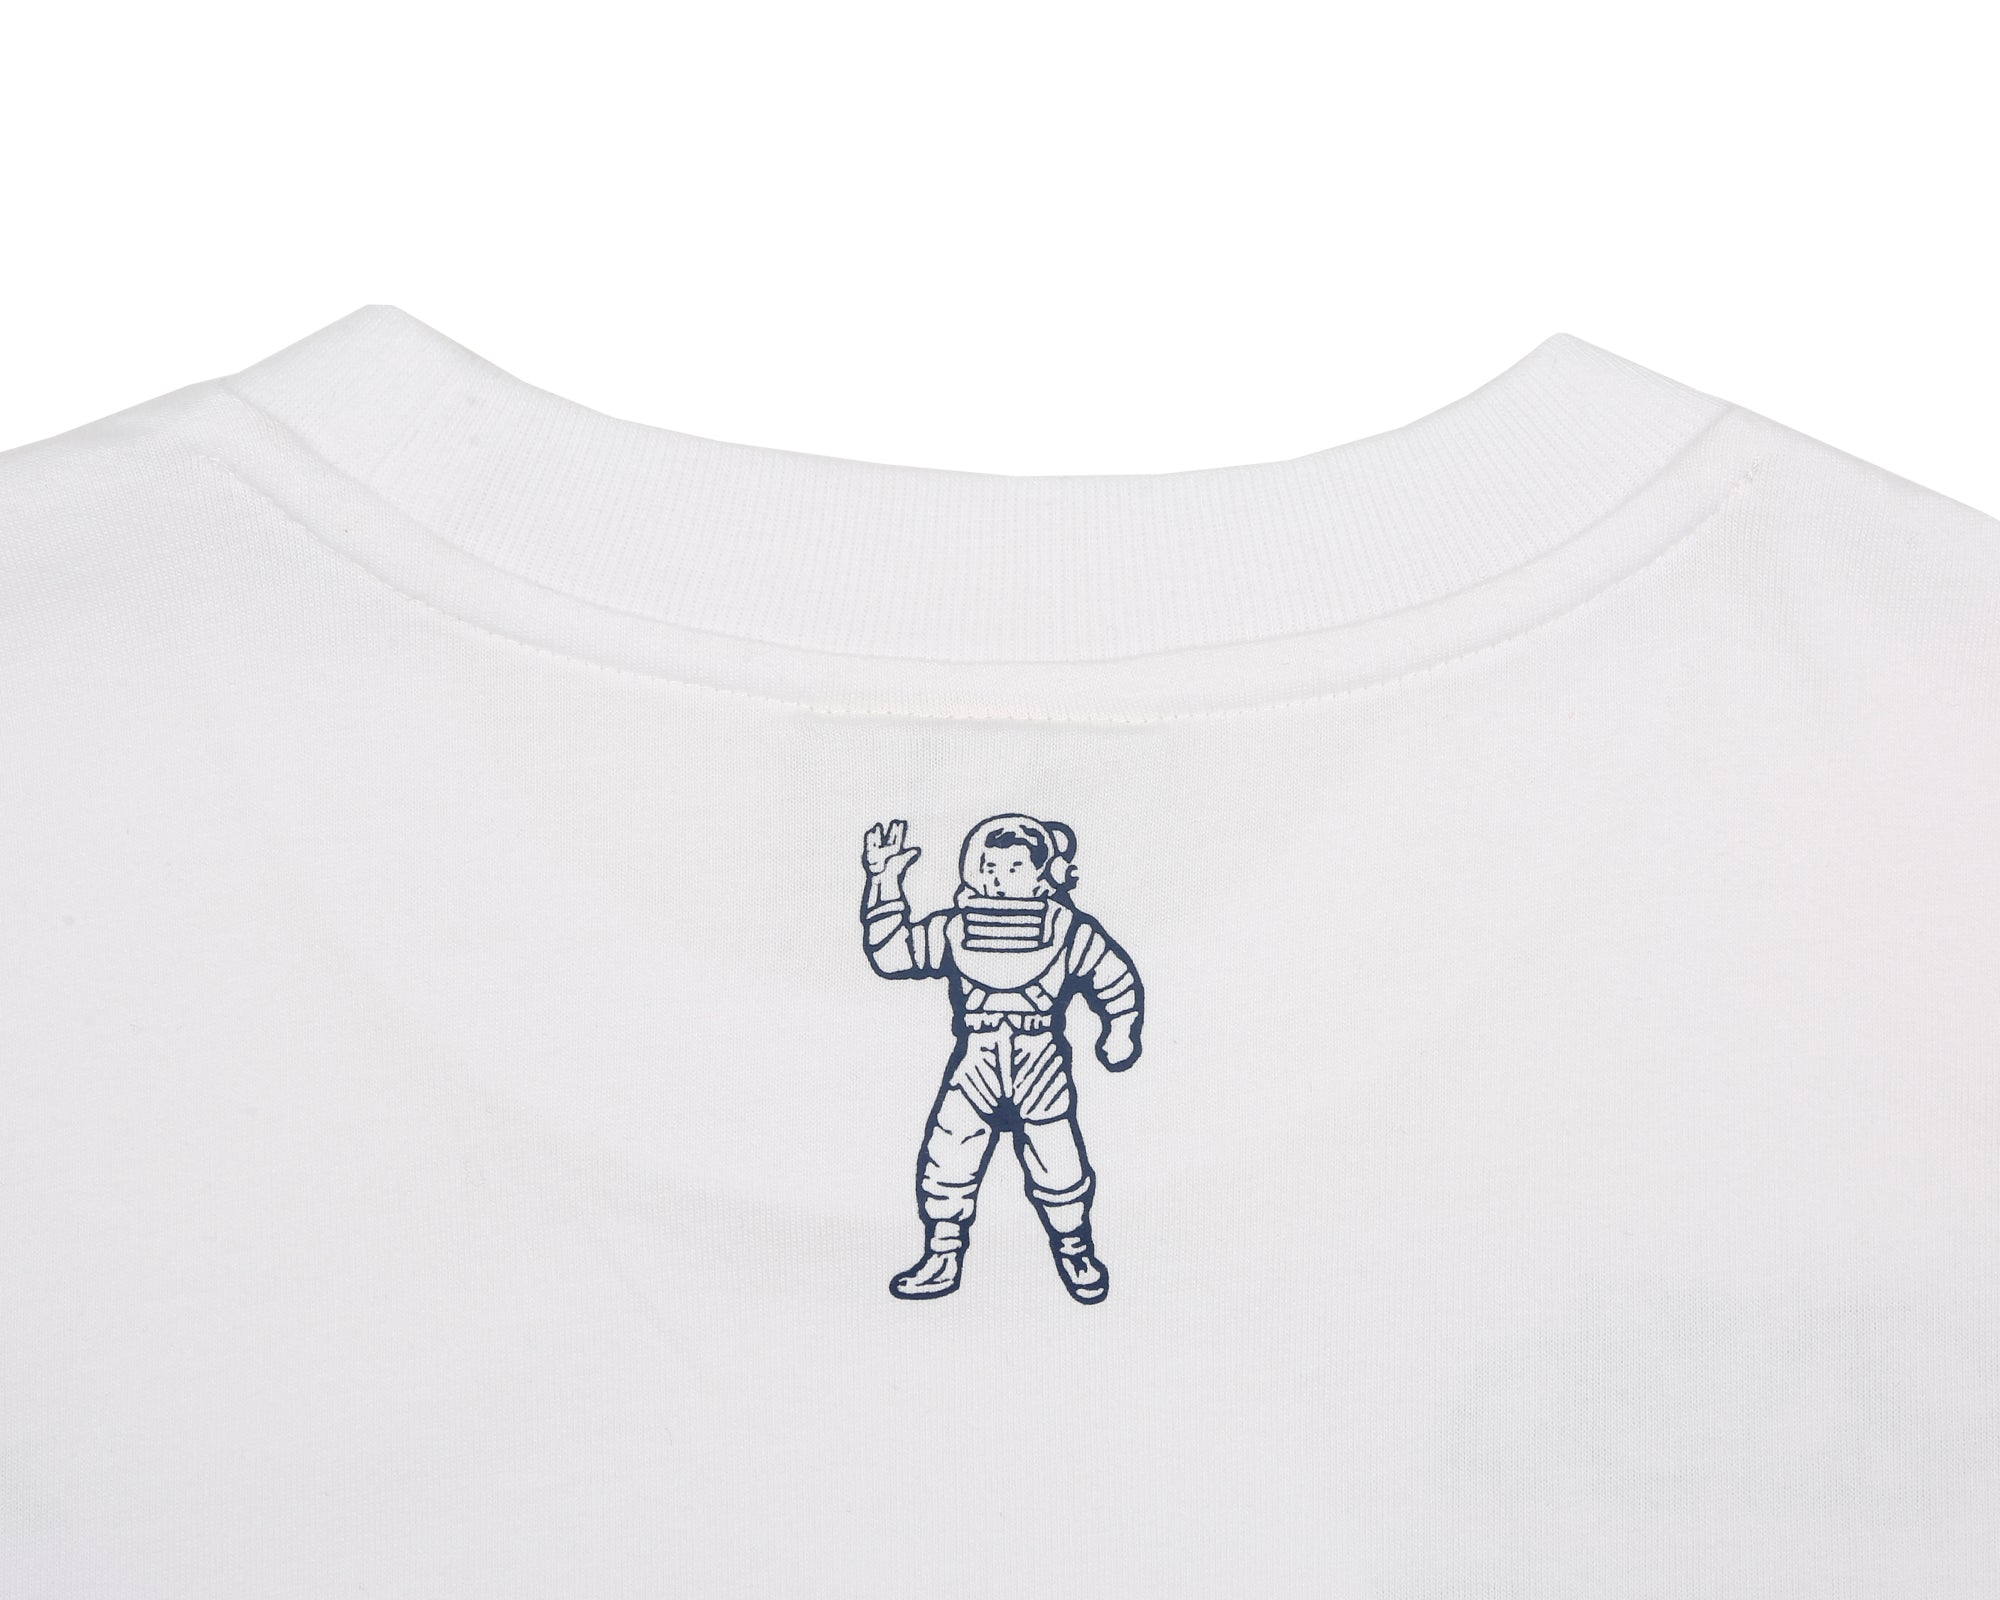 TRACK TEAM T-SHIRT - WHITE